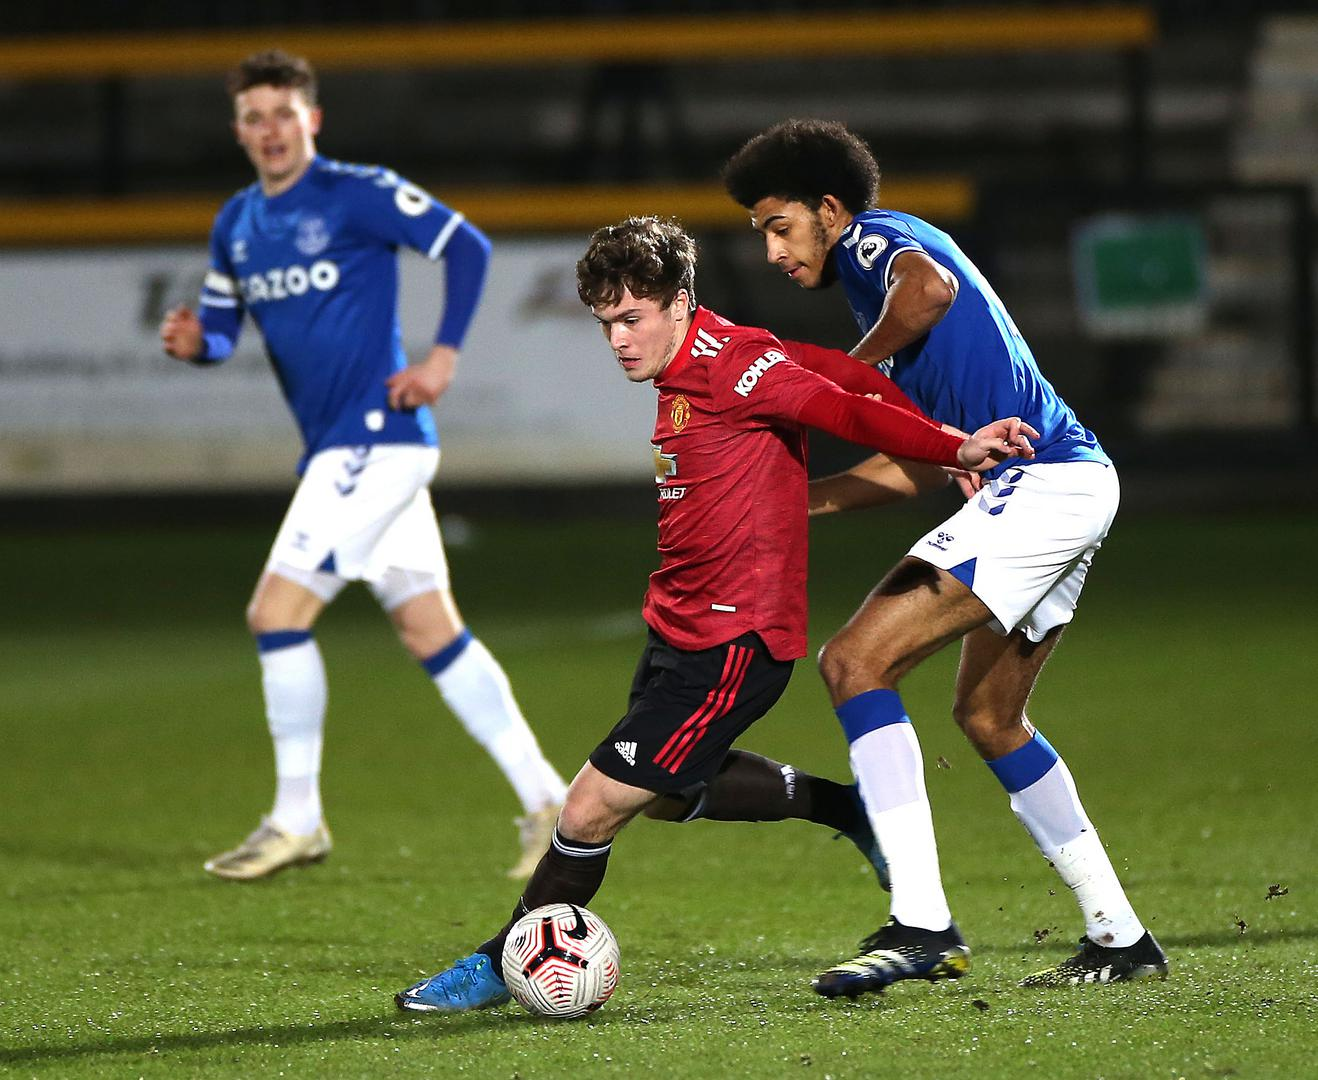 Charlie McCann on the ball for Manchester United Under-23s against Everton